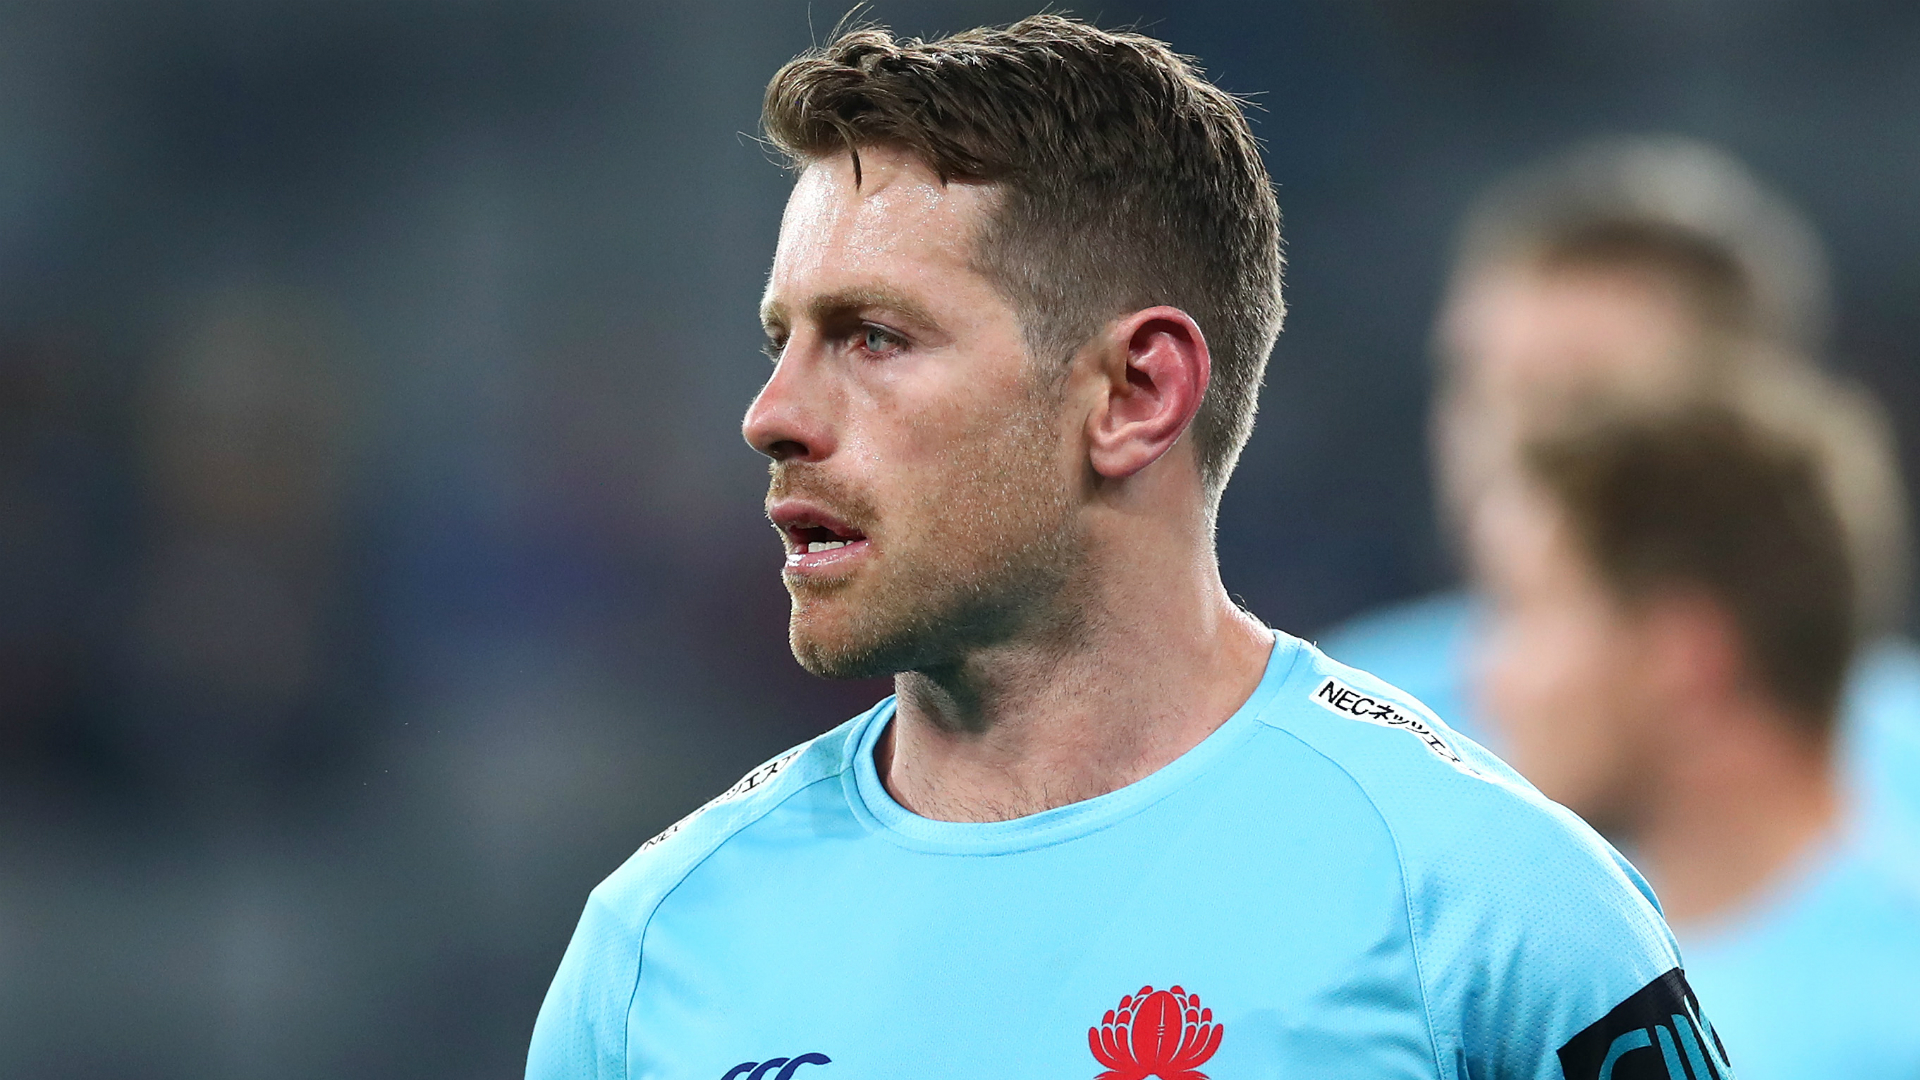 Bernard Foley is reportedly set to move to Japan's Top League following this year's Rugby World Cup after departing the Waratahs.